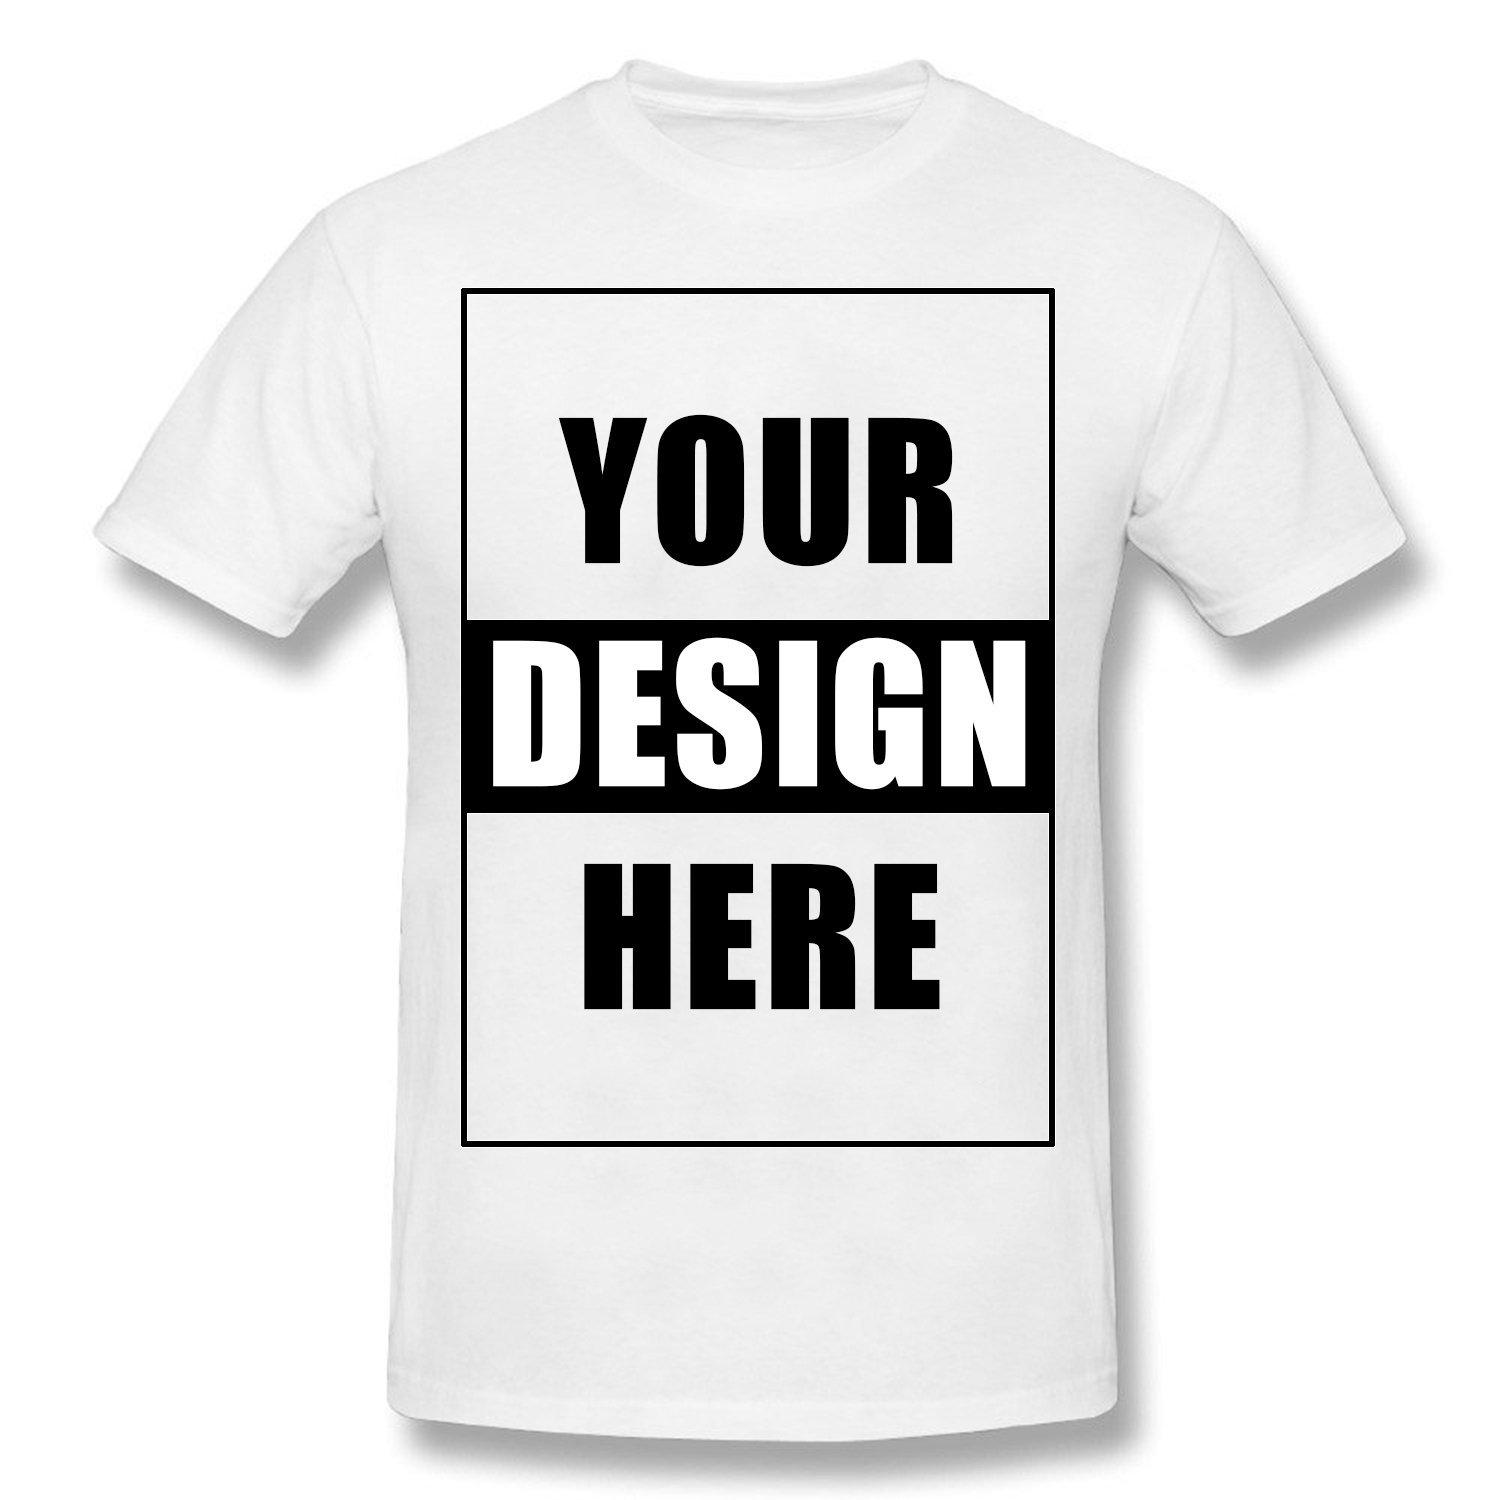 65b04f9d2b9 Men S Personalized Custom Text Or Picture Printed Cotton T Shirt Long  Sleeve Tee Shirts Design Your Own T Shirts From Carmarstore